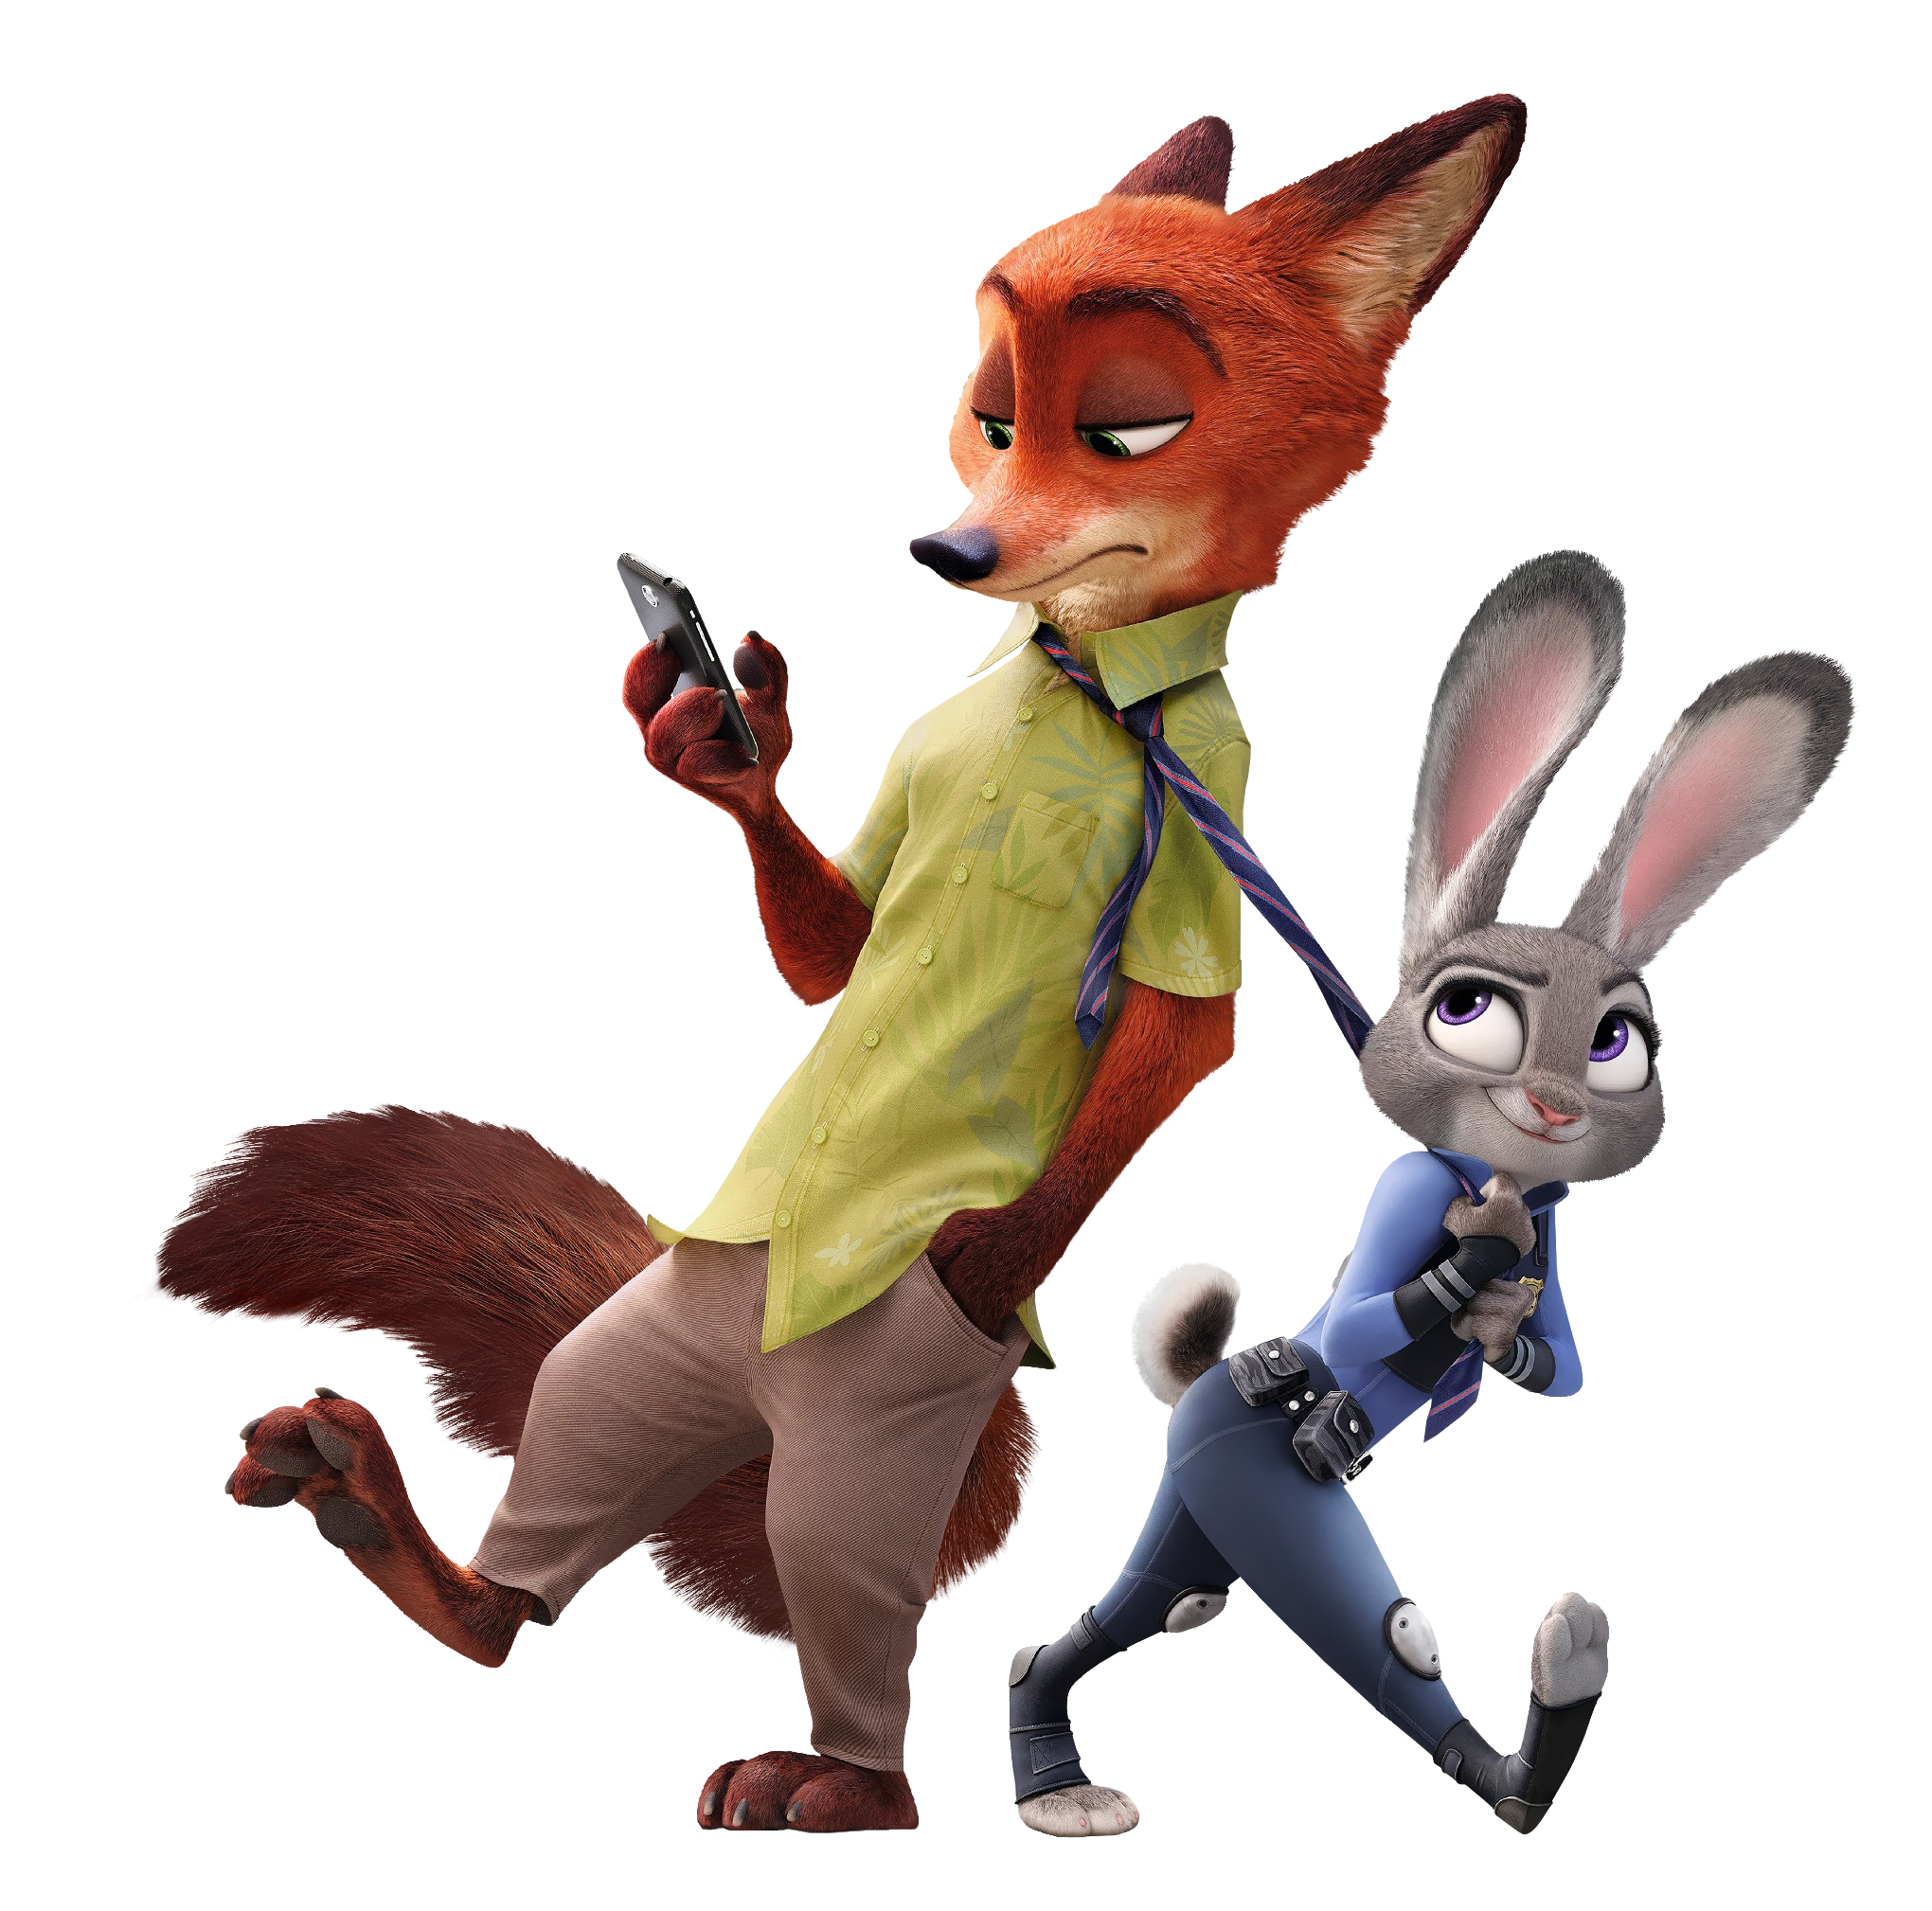 Judy Hopps And Nick Wilde Zootopia Gallery Yopriceville High Quality Images And Transparent Png Free Zootopia Anime Disney Zootopia Zootopia Nick And Judy